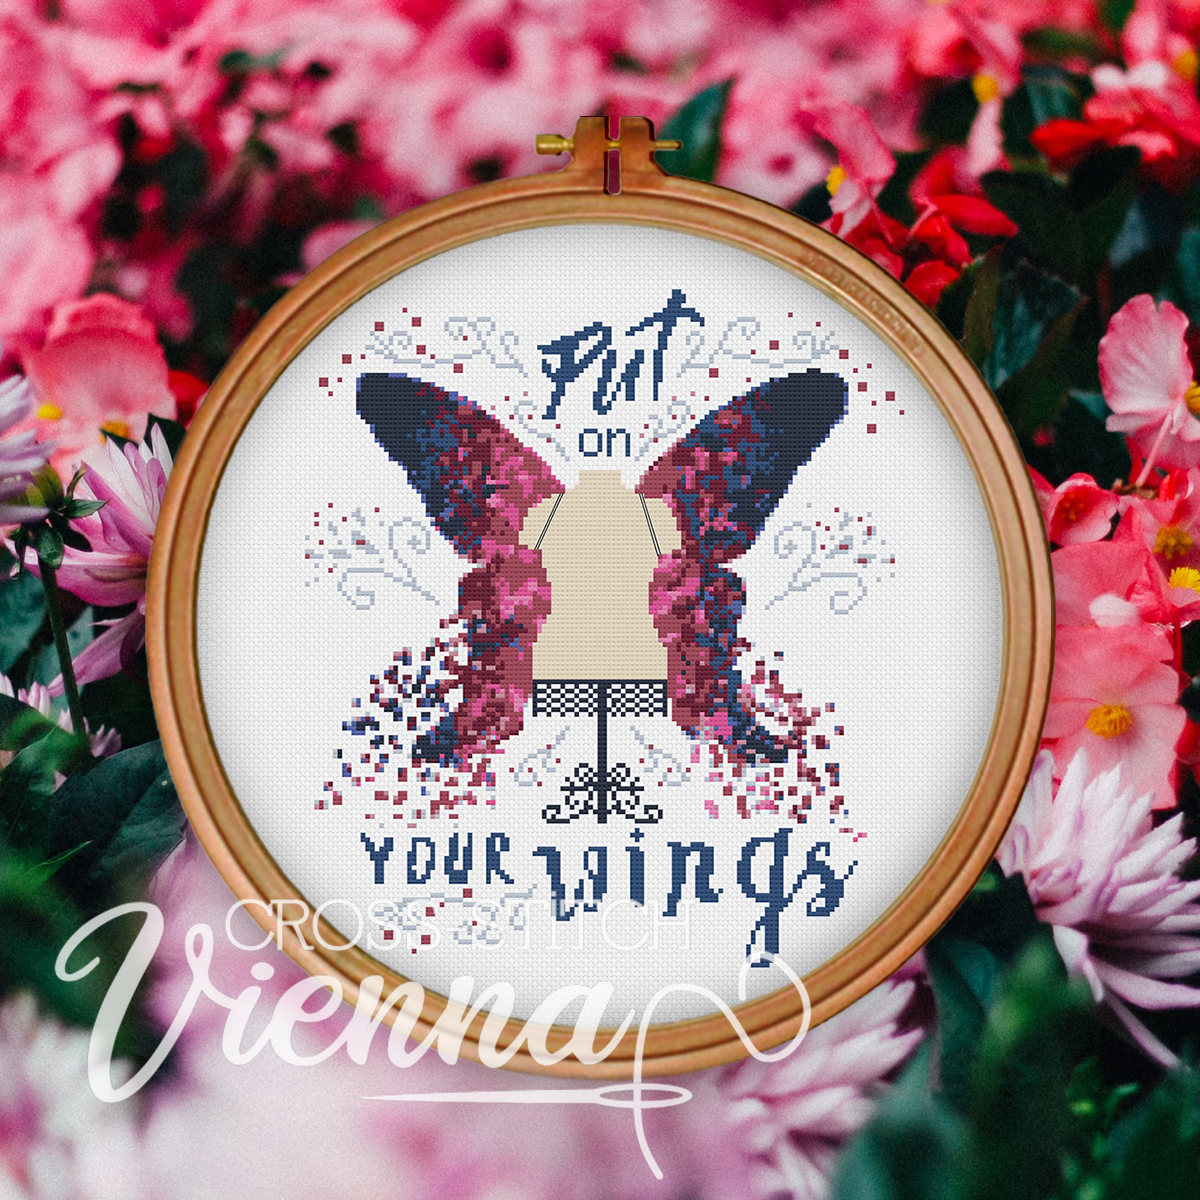 2021-14 Find Your Wings Cross-Stitch Pattern by Cross-Stitch Vienna sq2